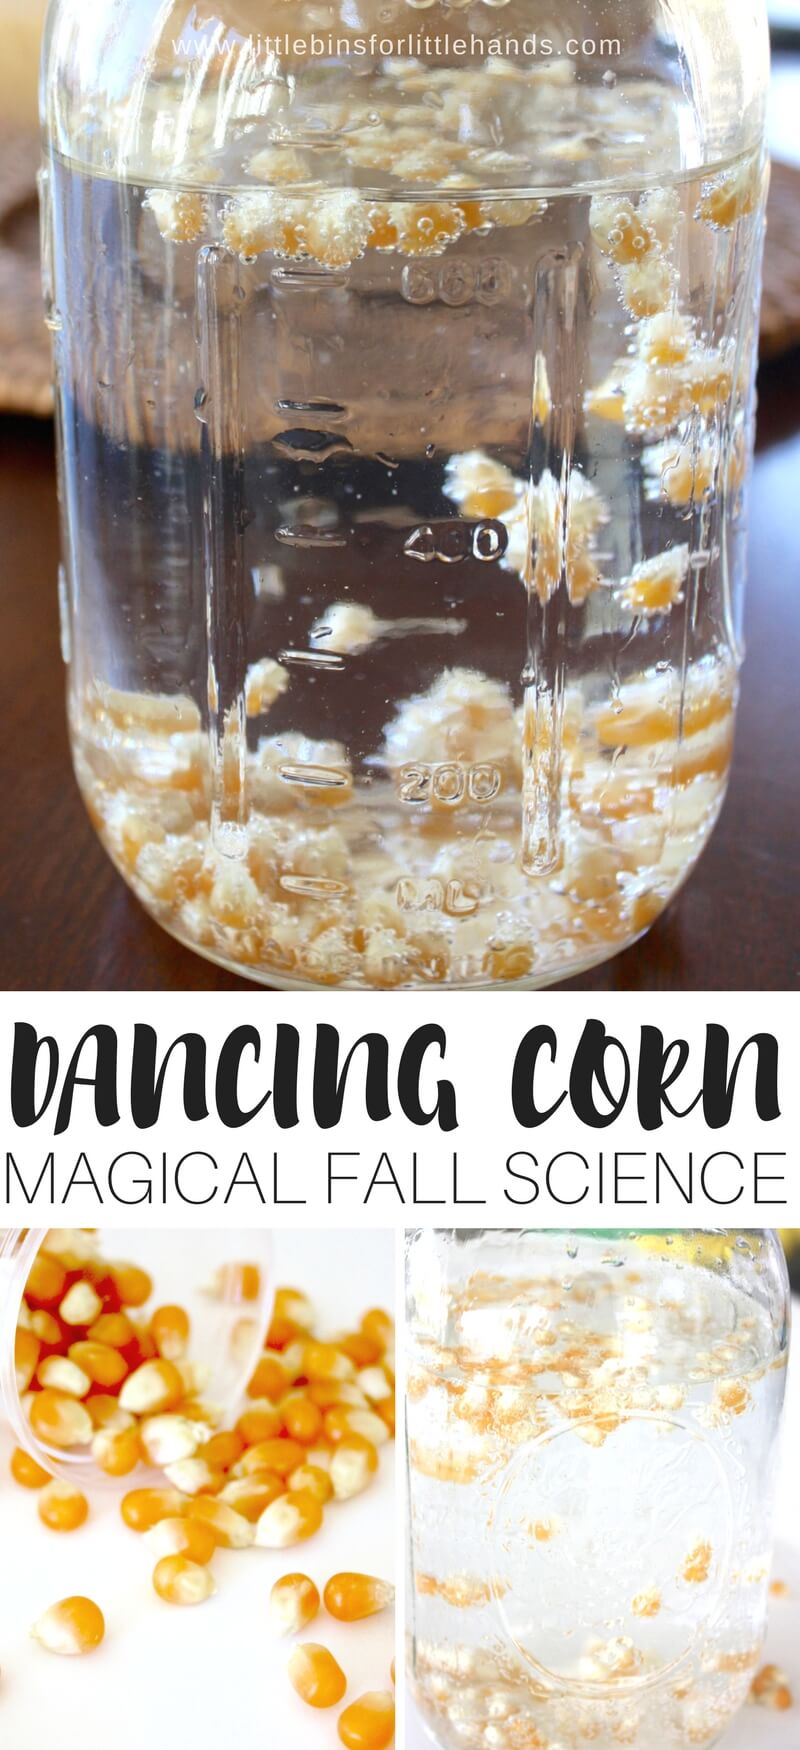 Dancing Corn in addition Halloween Baking Soda Science Fizzy Eyeballs together with Best Preschool Science Activities For Kids in addition Fall Science Experiments For Kids additionally Seed Jar Growing. on simple science for preschoolers 10 experiments